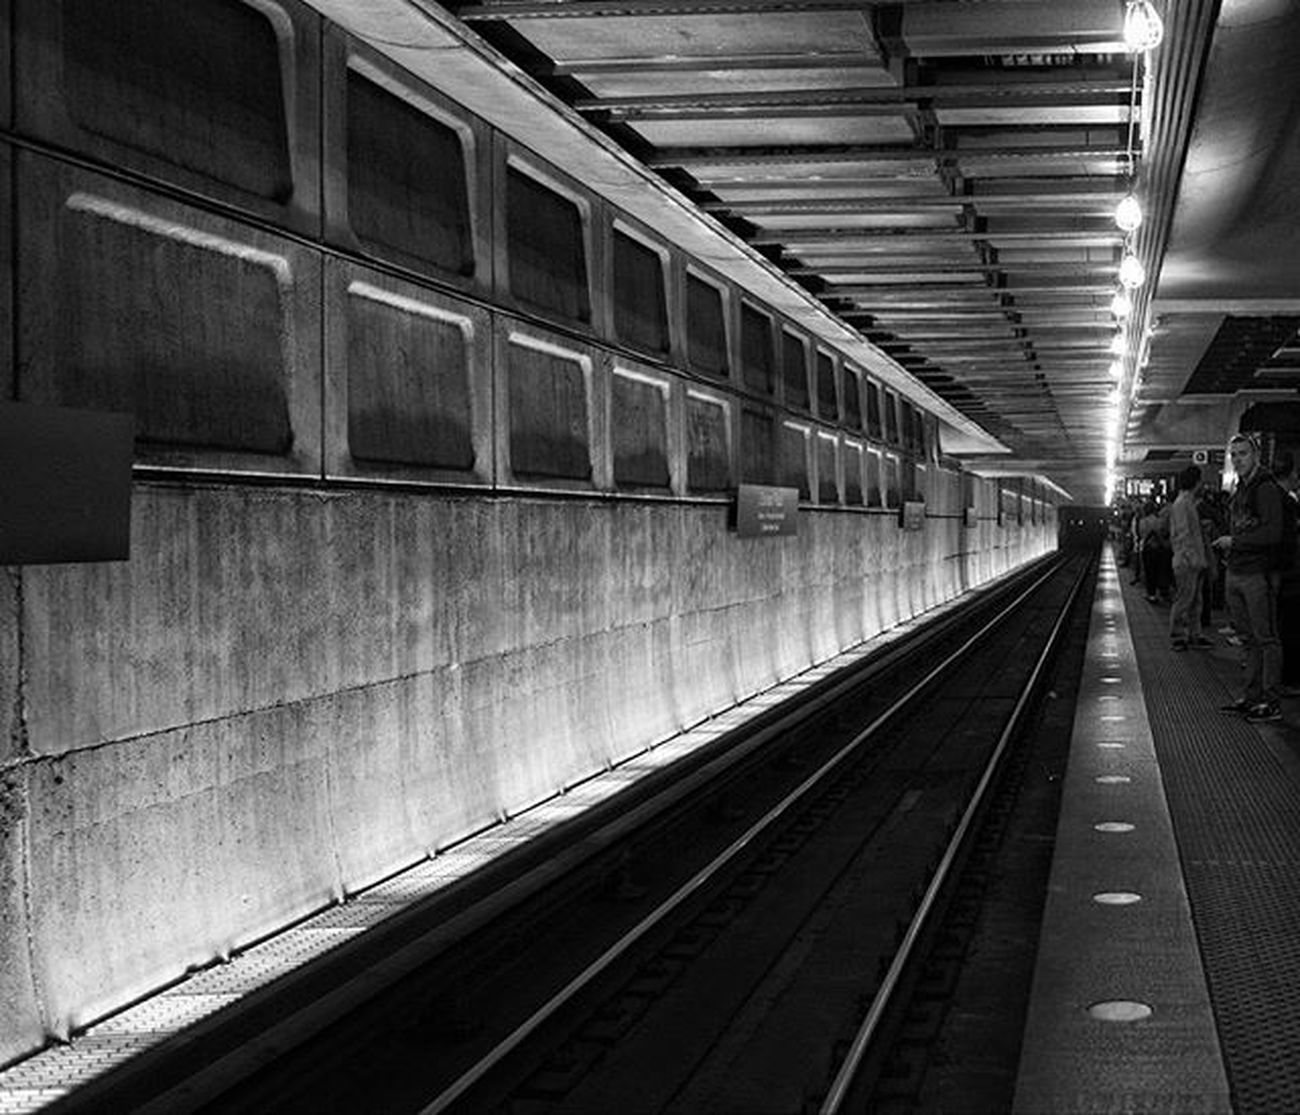 """The patience through darkness is key, eventually it will lead to your destination, it will lead you to a better light.""- @qasim.hasan.72 Darknesstolightness Metro Youngmetro Blackandwhite Train Destination Waiting LightAtTheEnd Patience Majorkey Lights DC Ponderonit Ztprod"